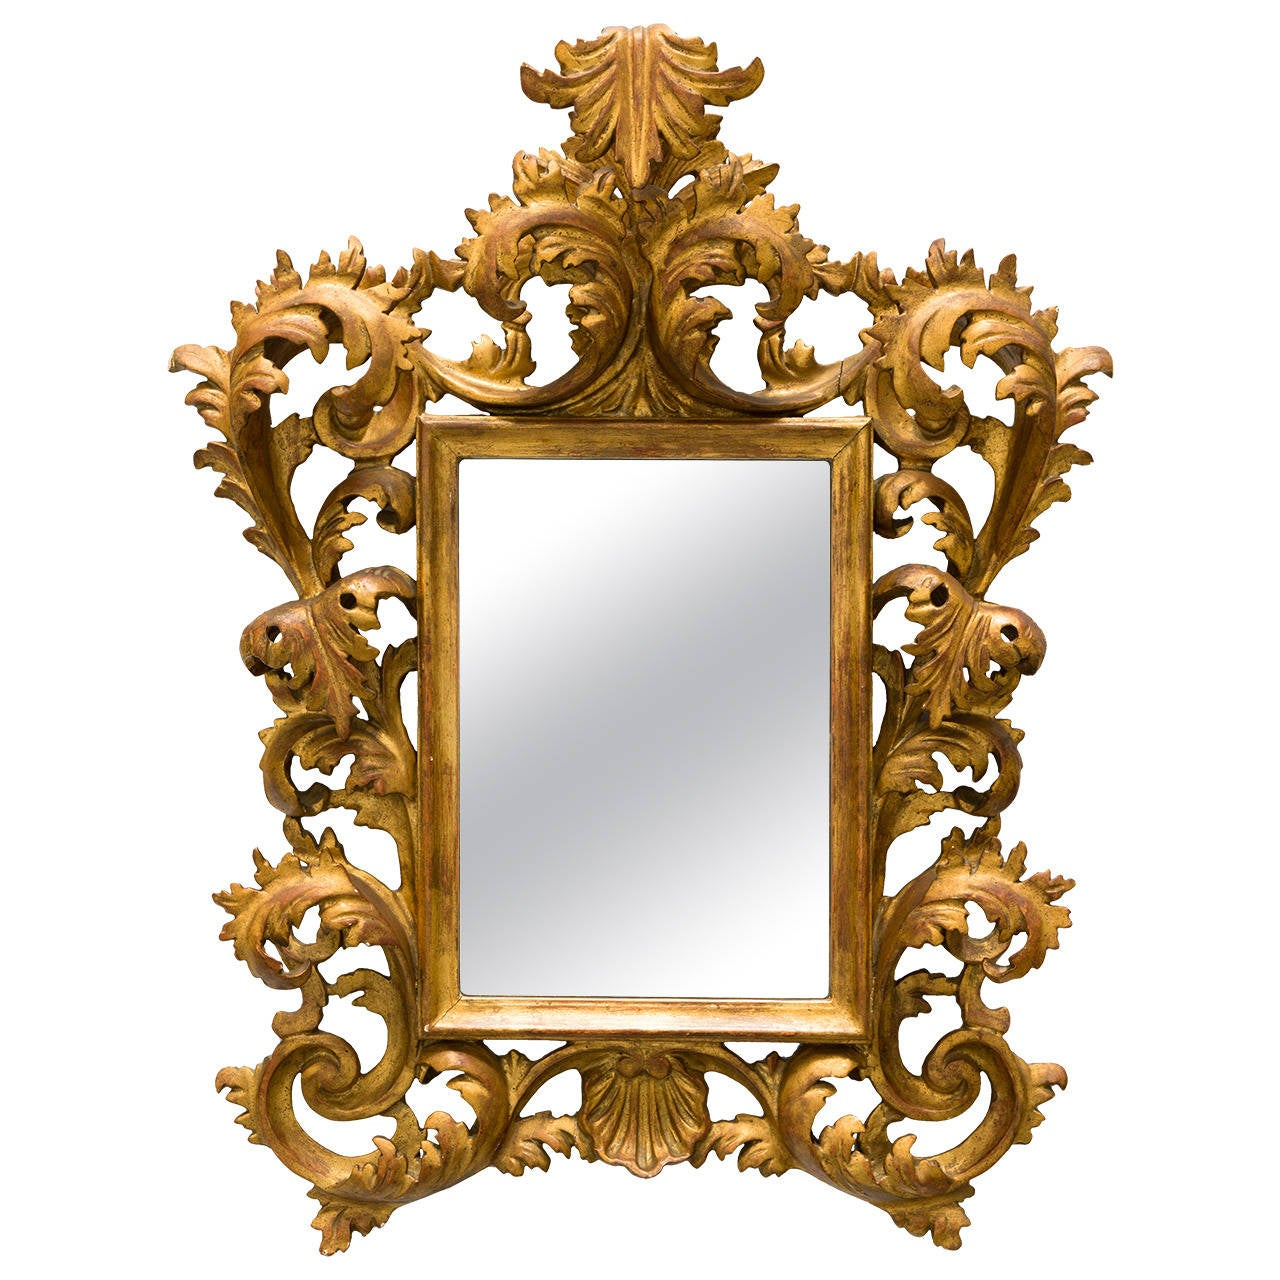 french giltwood rococo style wall mirror for sale at 1stdibs